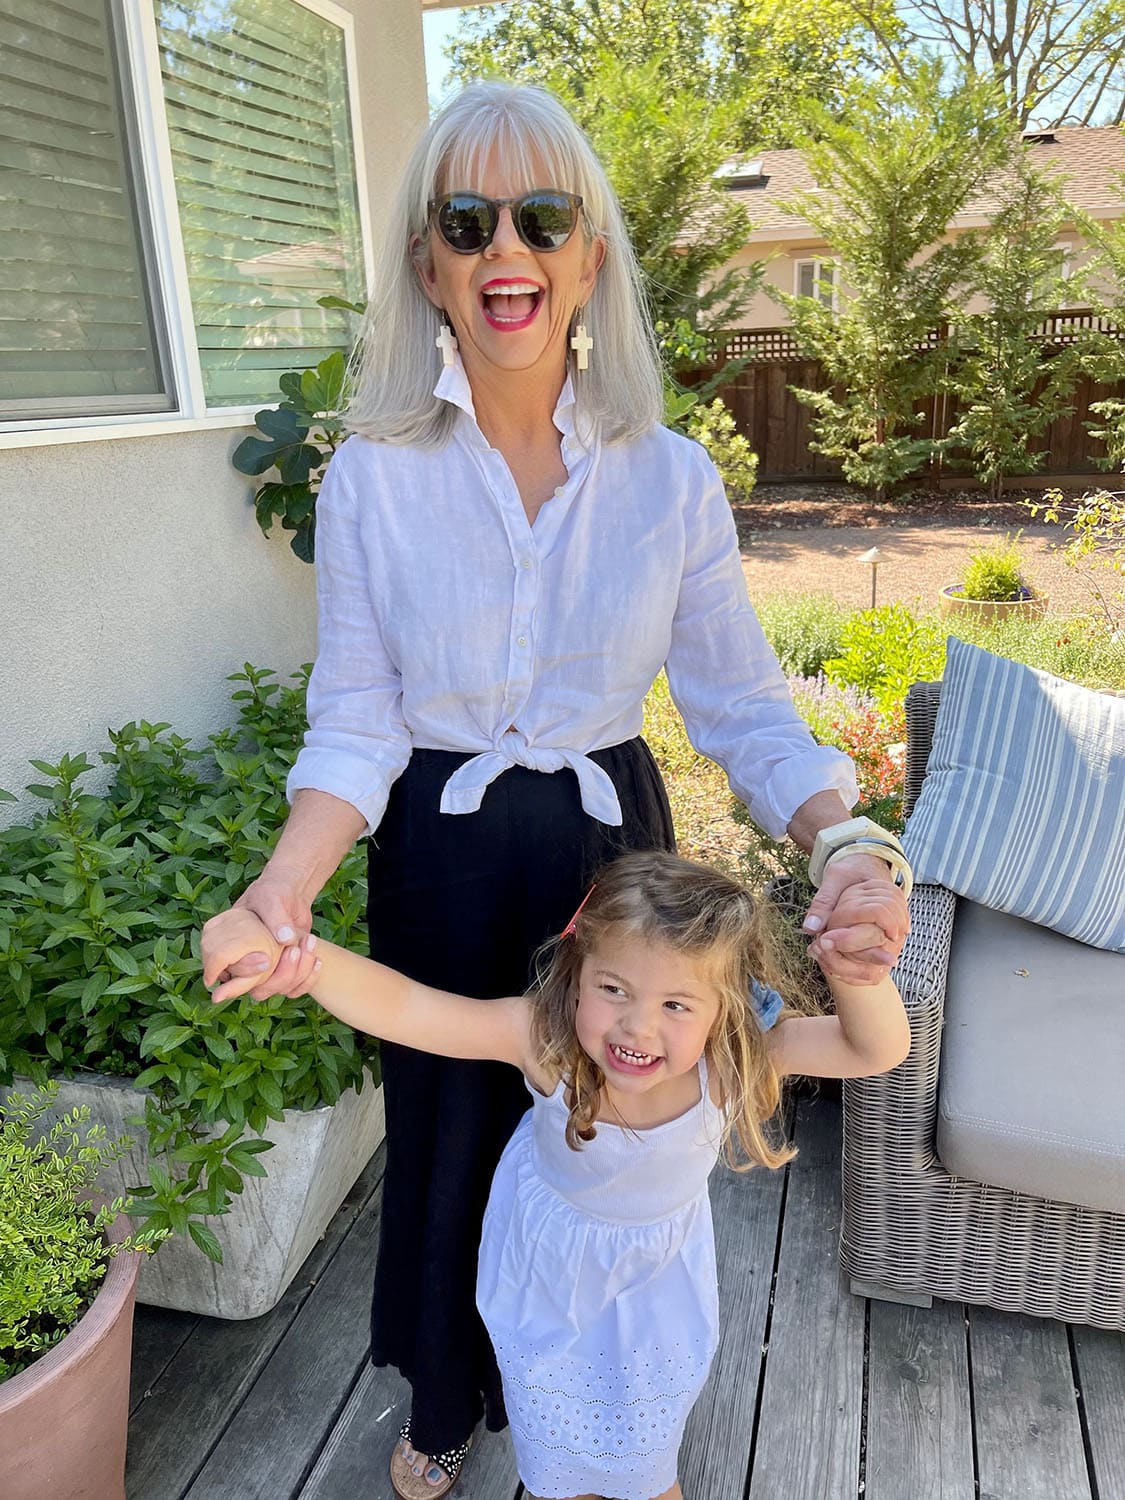 cindy hattersley in cp shades and j crew with granddaughter Summer